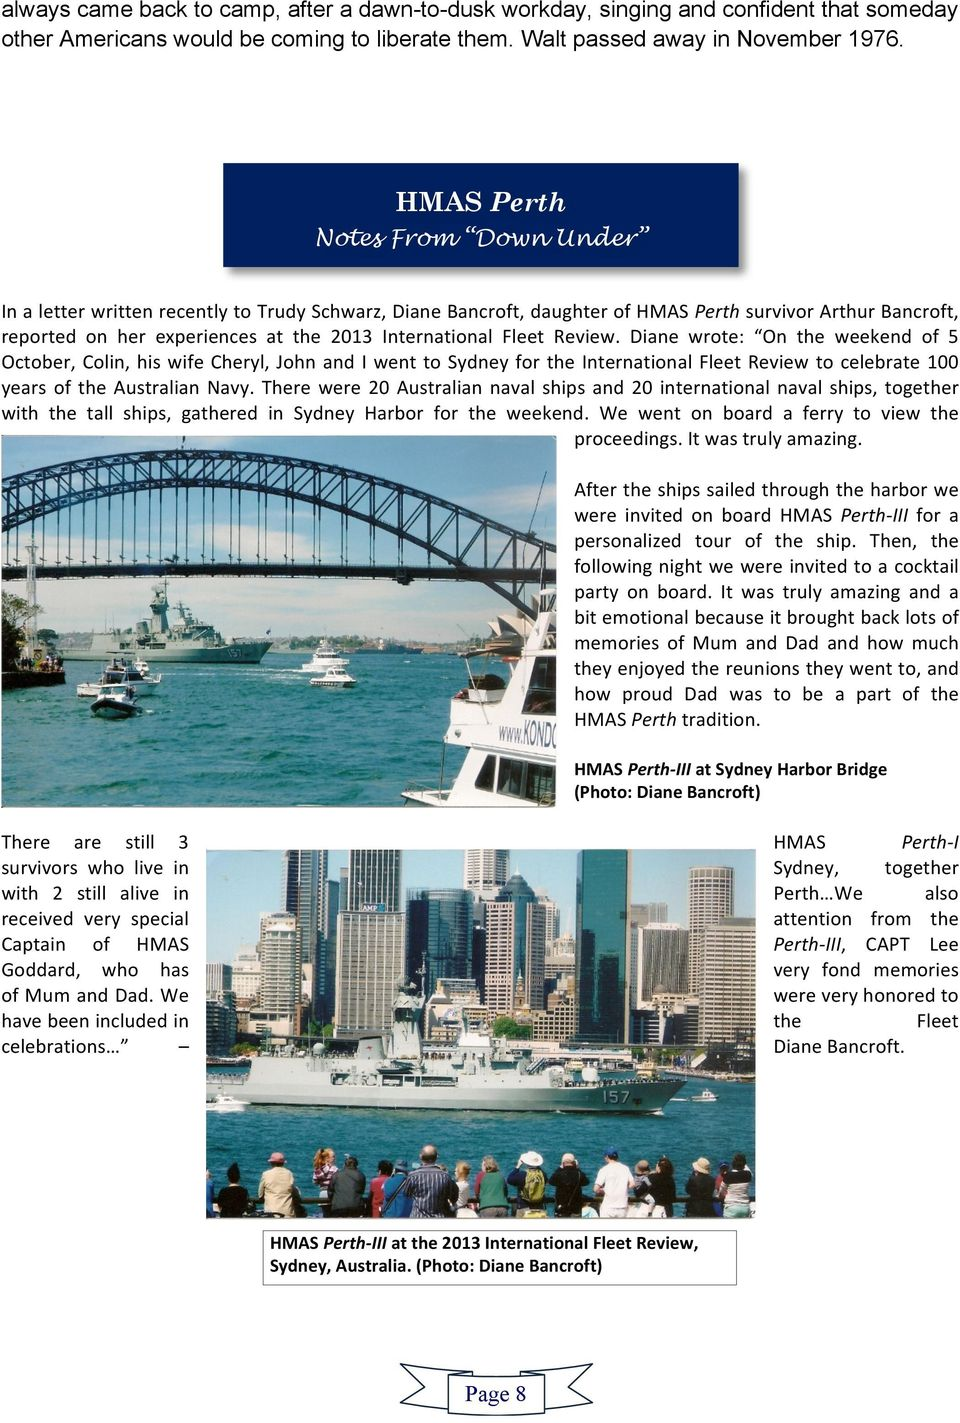 the 2013 information International on the Fleet HMAS Review.